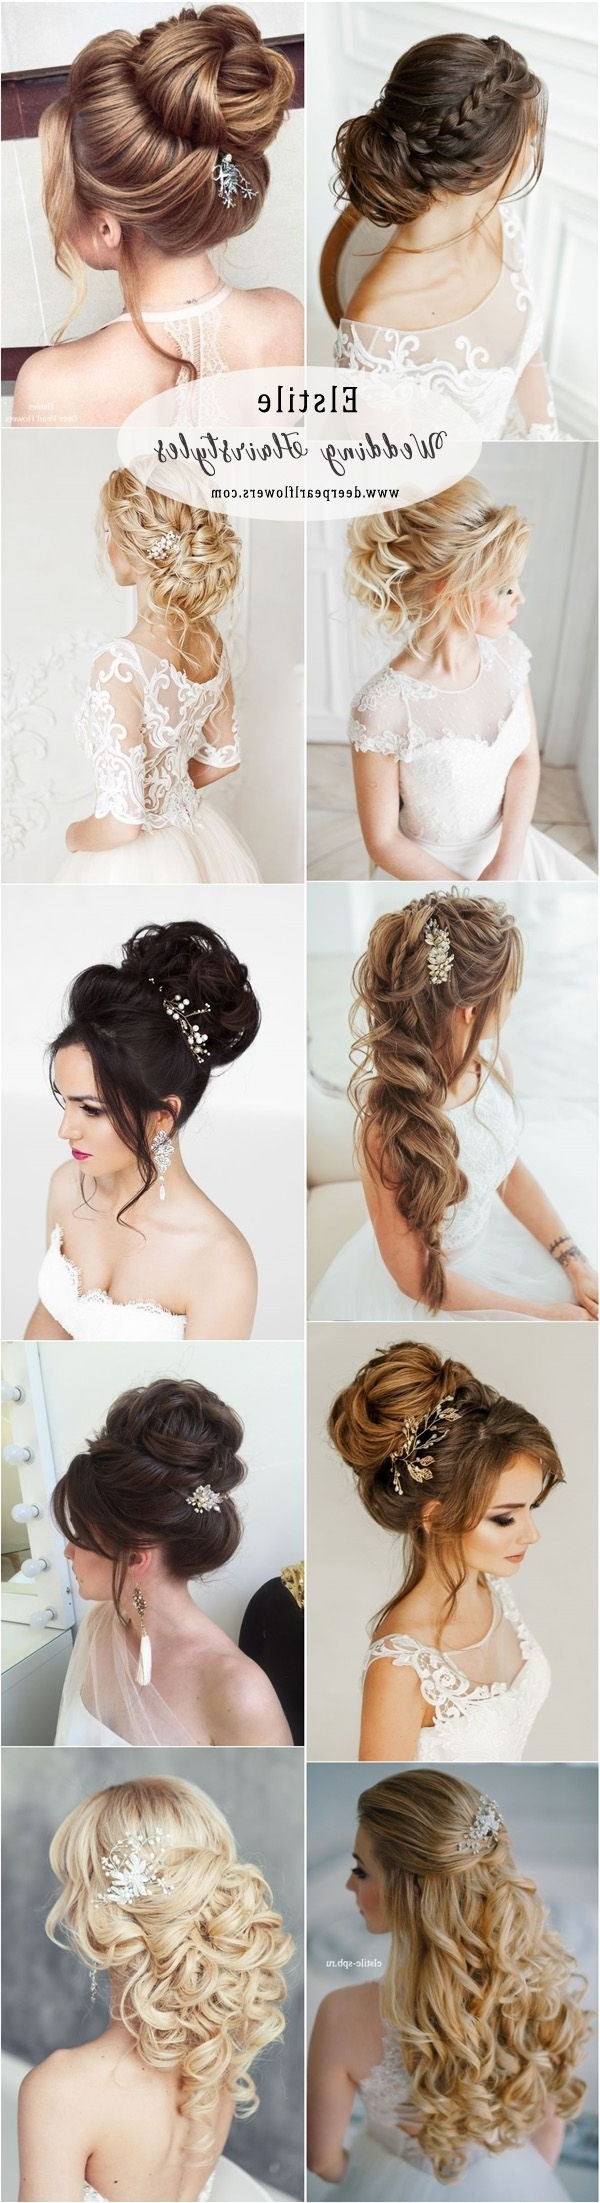 72 Best Long Wedding Hairstyles From Top 8 Hairstylists (View 2 of 15)